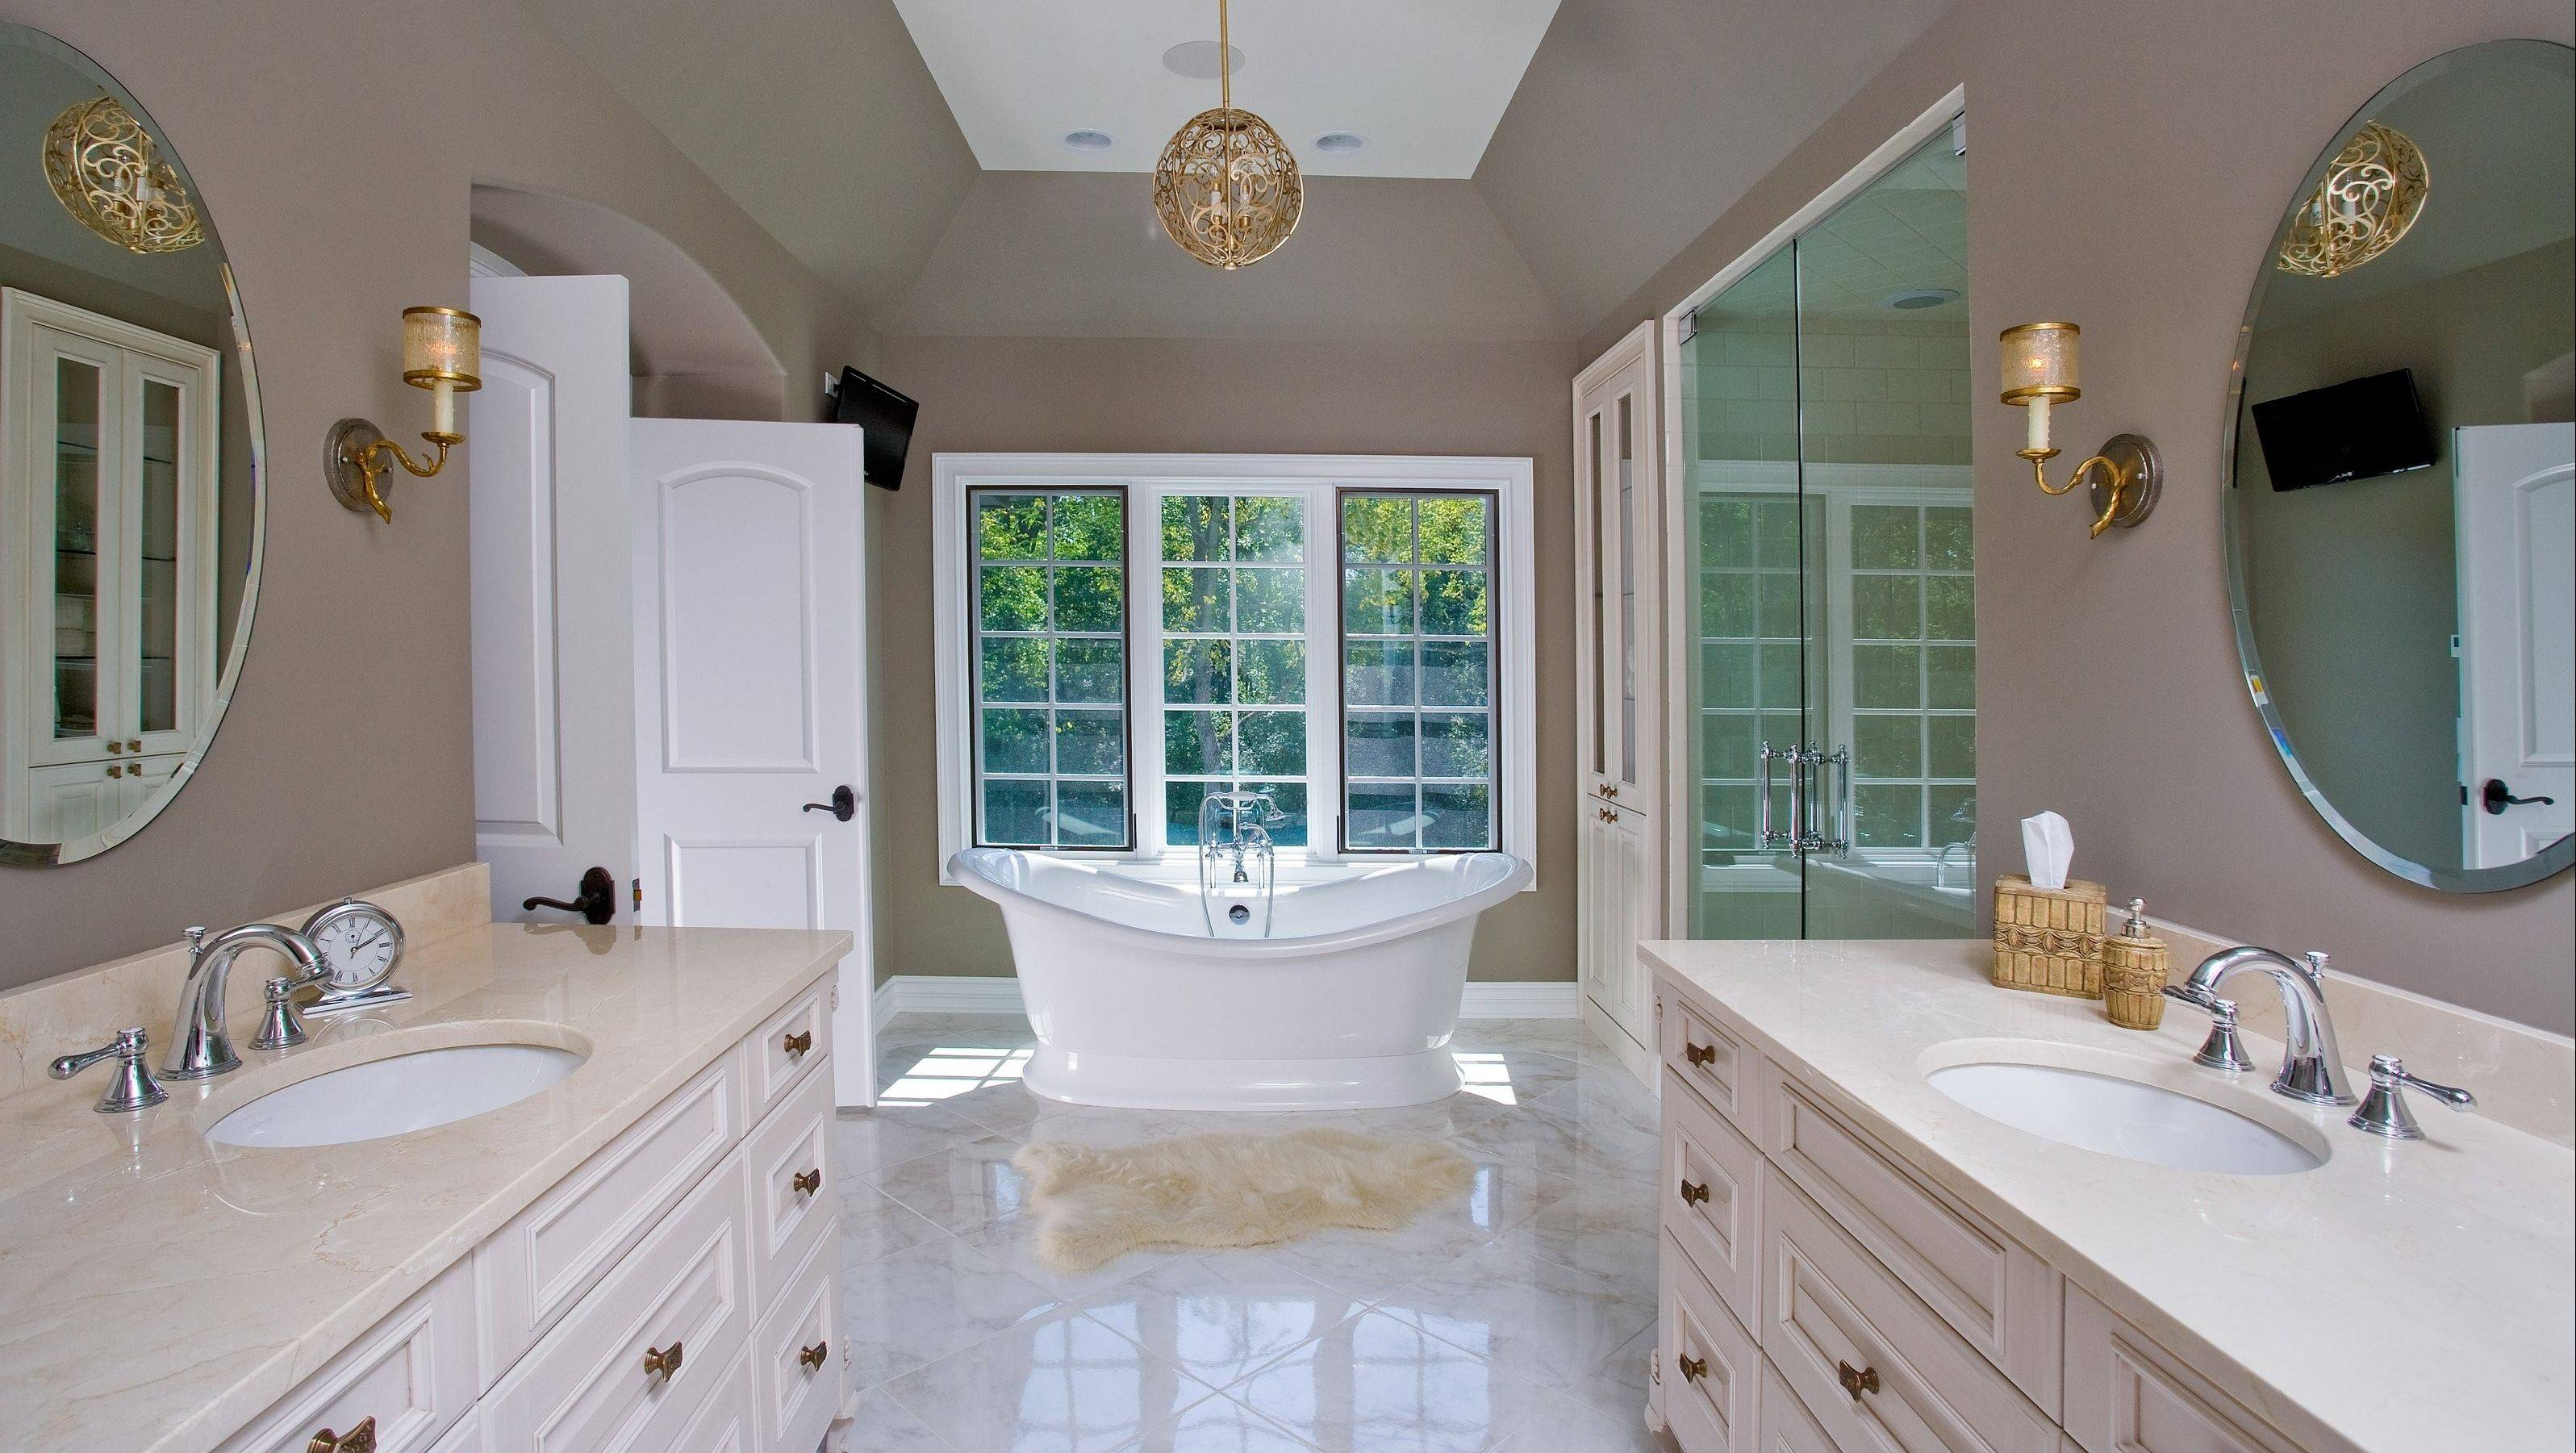 The master bathroom is spacious with a Zen bath and large windows allowing a great view of nature.